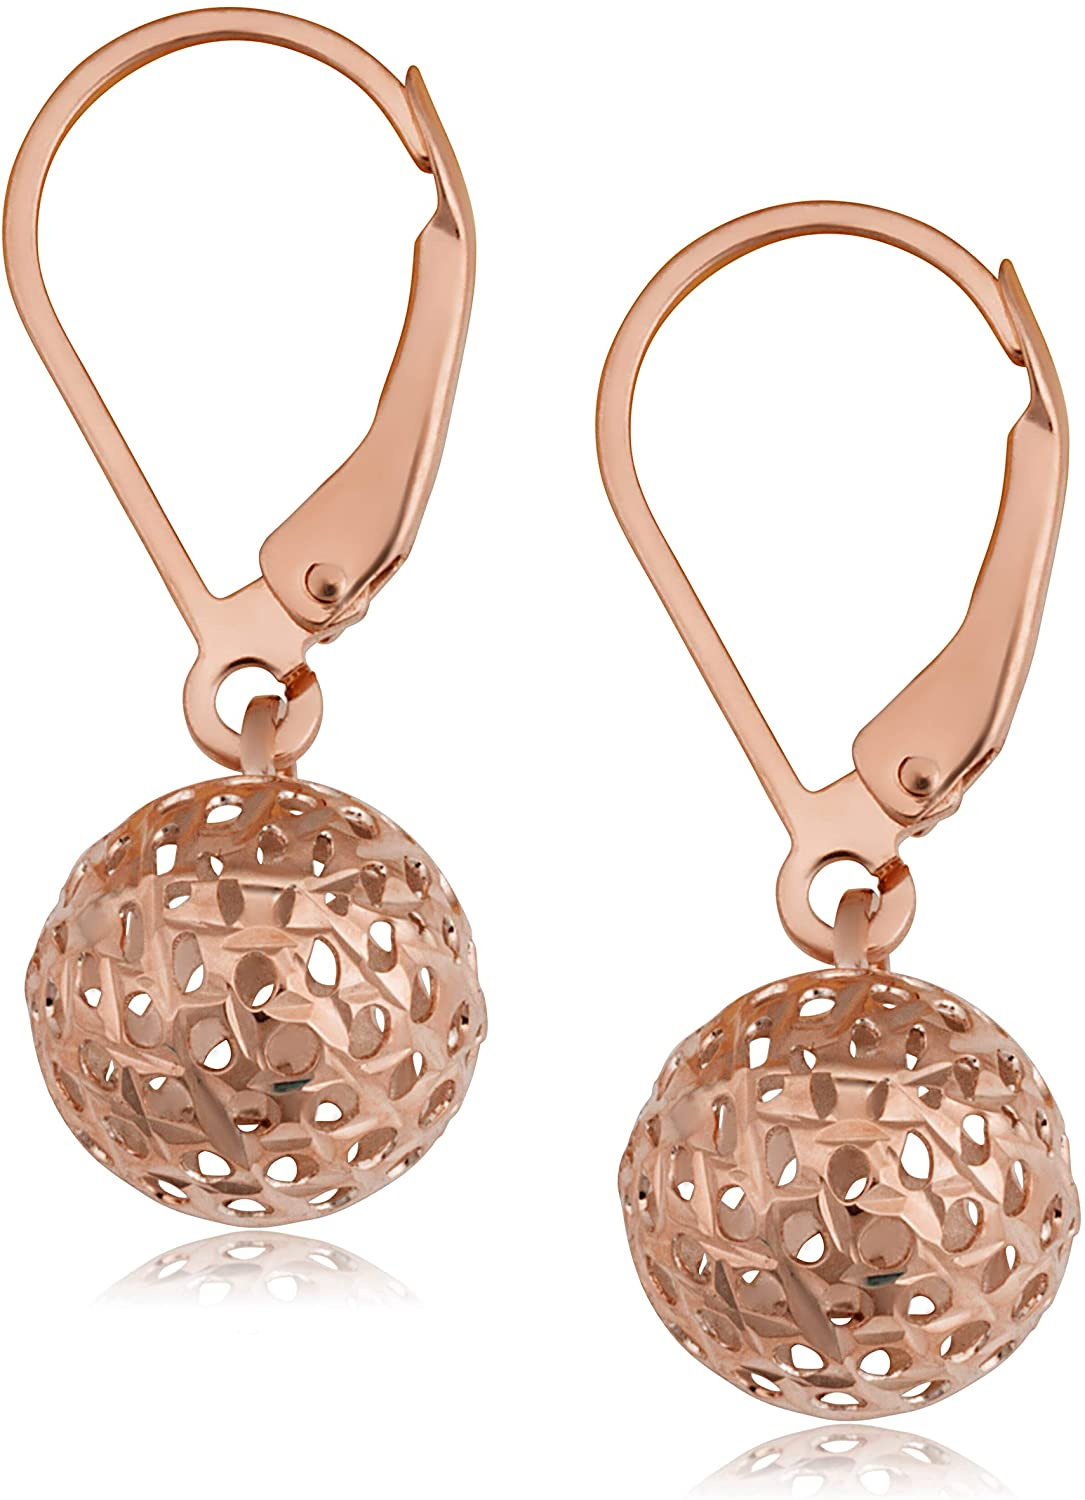 KoolJewelry Real 10k Yellow Gold White Gold or Rose Gold Filigree Ball Earrings Minimalist Jewelry for Women